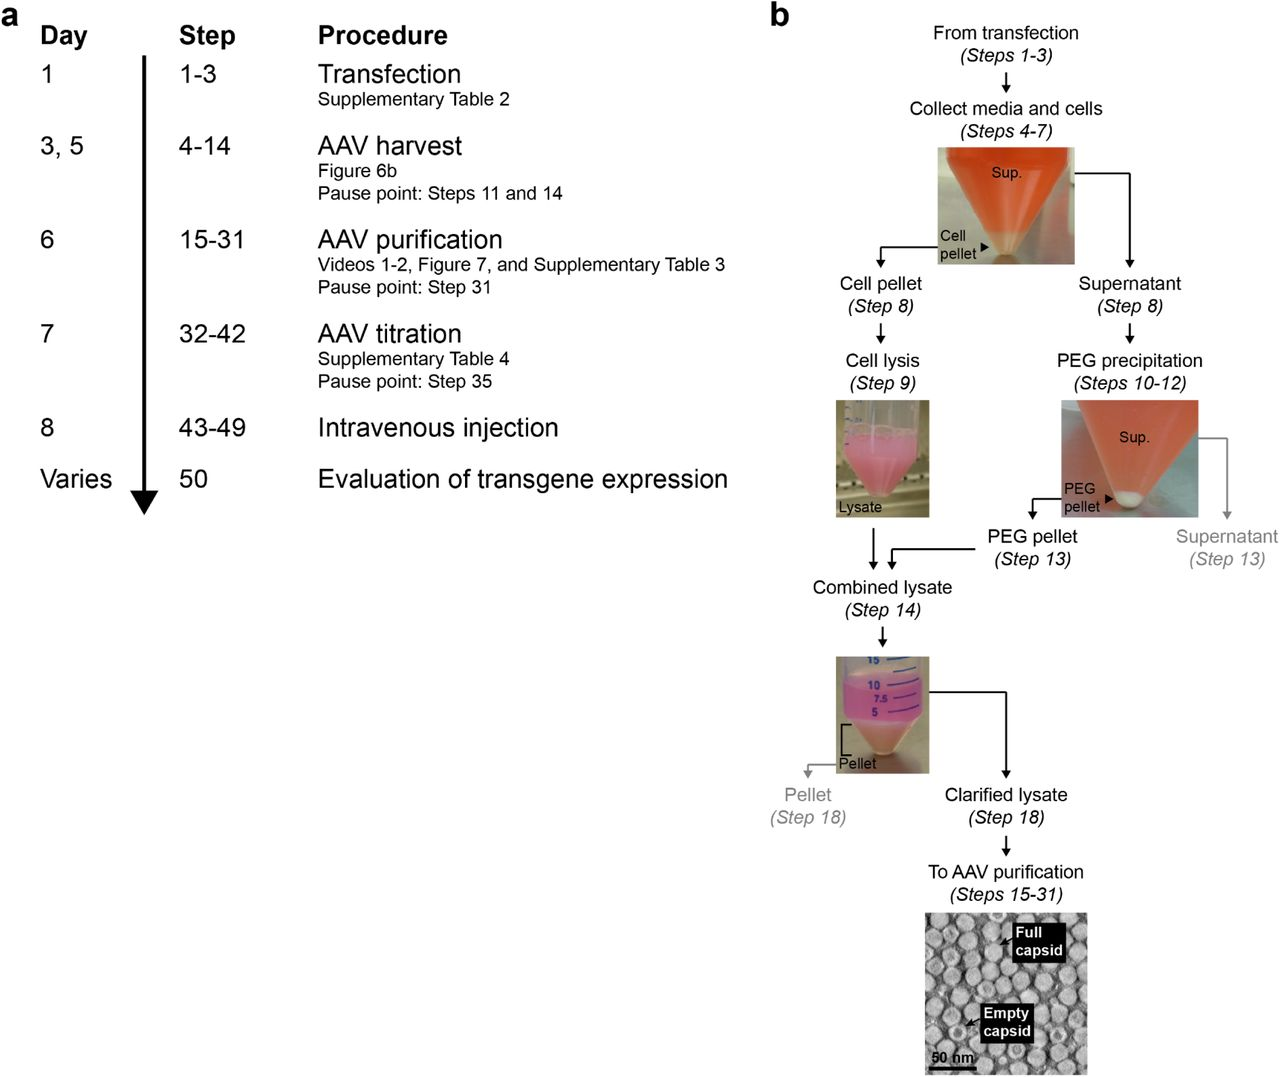 Widespread and targeted gene expression by systemic AAV vectors